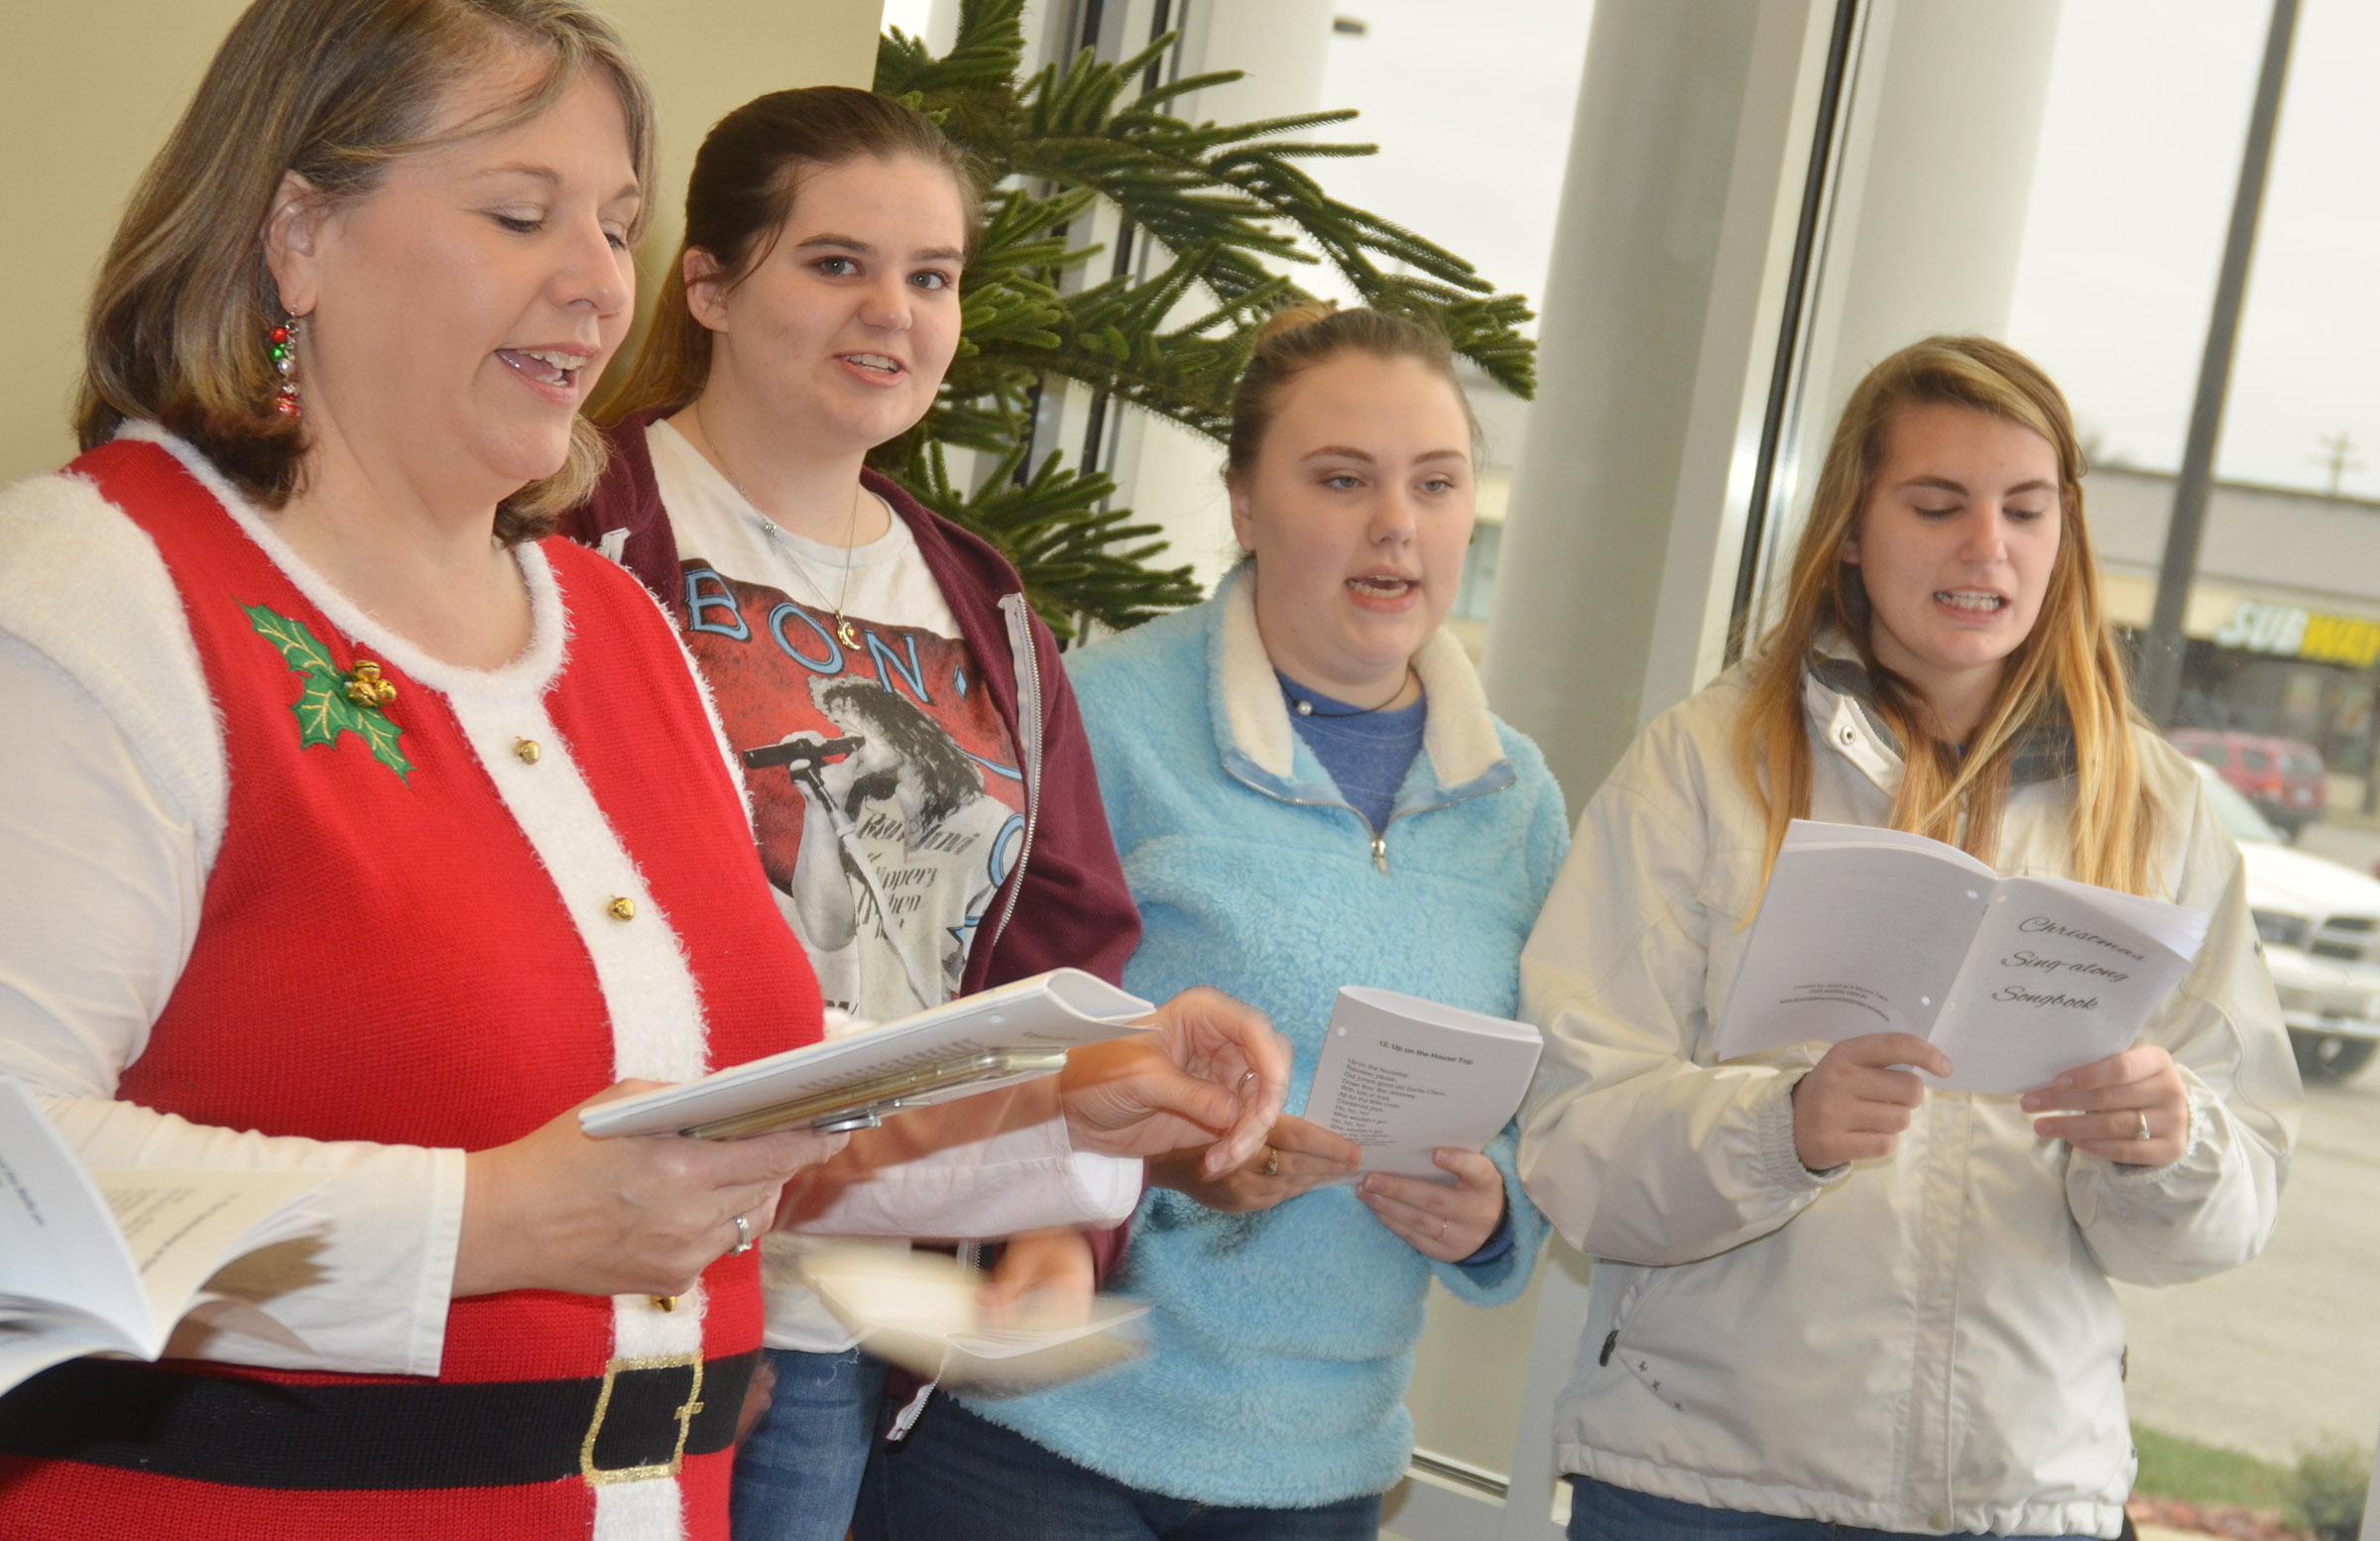 CHS choir members sing Christmas carols at Taylor County Bank. From left are music teacher Cyndi Chadwick and seniors Vivian Brown, Haley Fitch and Tiffany Kane.